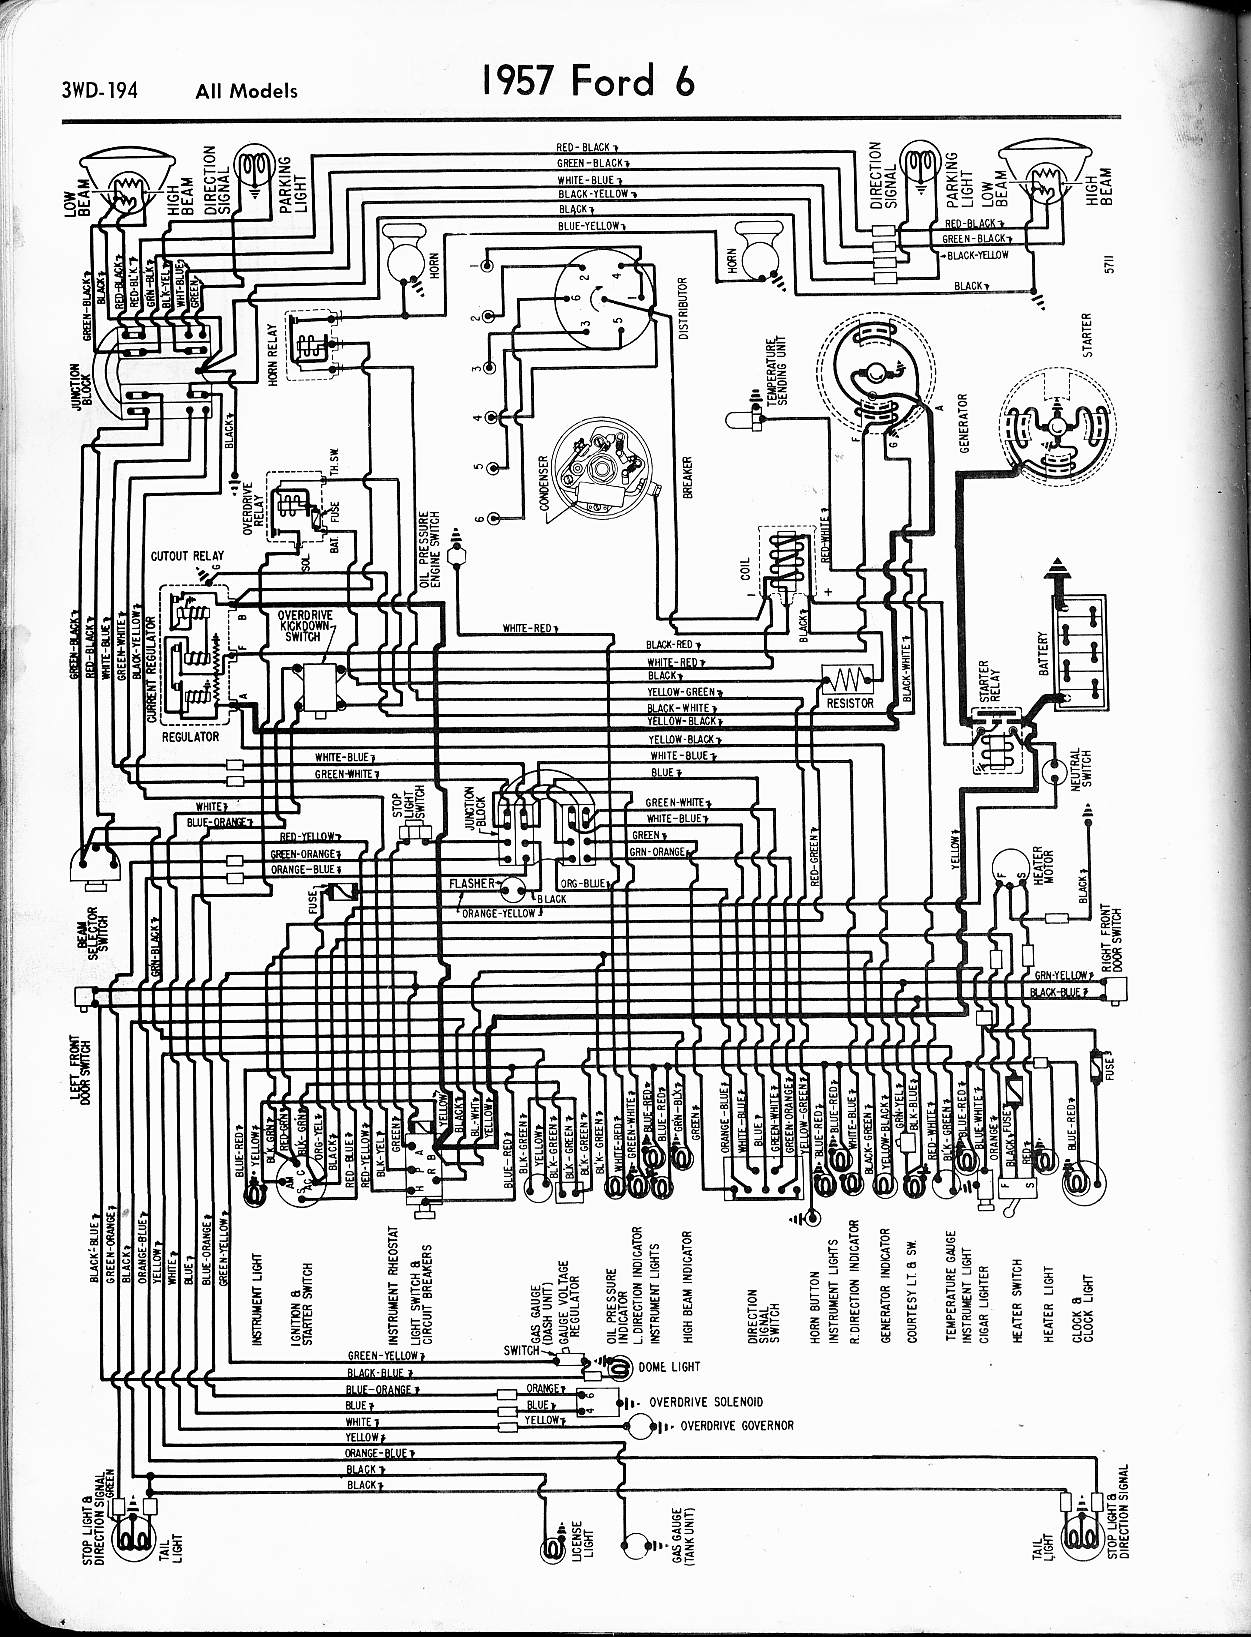 57 Ford Truck Wiring Diagram - Schematics Online Understanding Truck Wiring Diagram on understanding transformer diagrams, understanding engineering drawings, understanding foundation diagrams, understanding circuits diagrams, pinout diagrams, understanding electrical diagrams, electronic circuit diagrams, understanding ladder diagrams, understanding schematic diagrams,